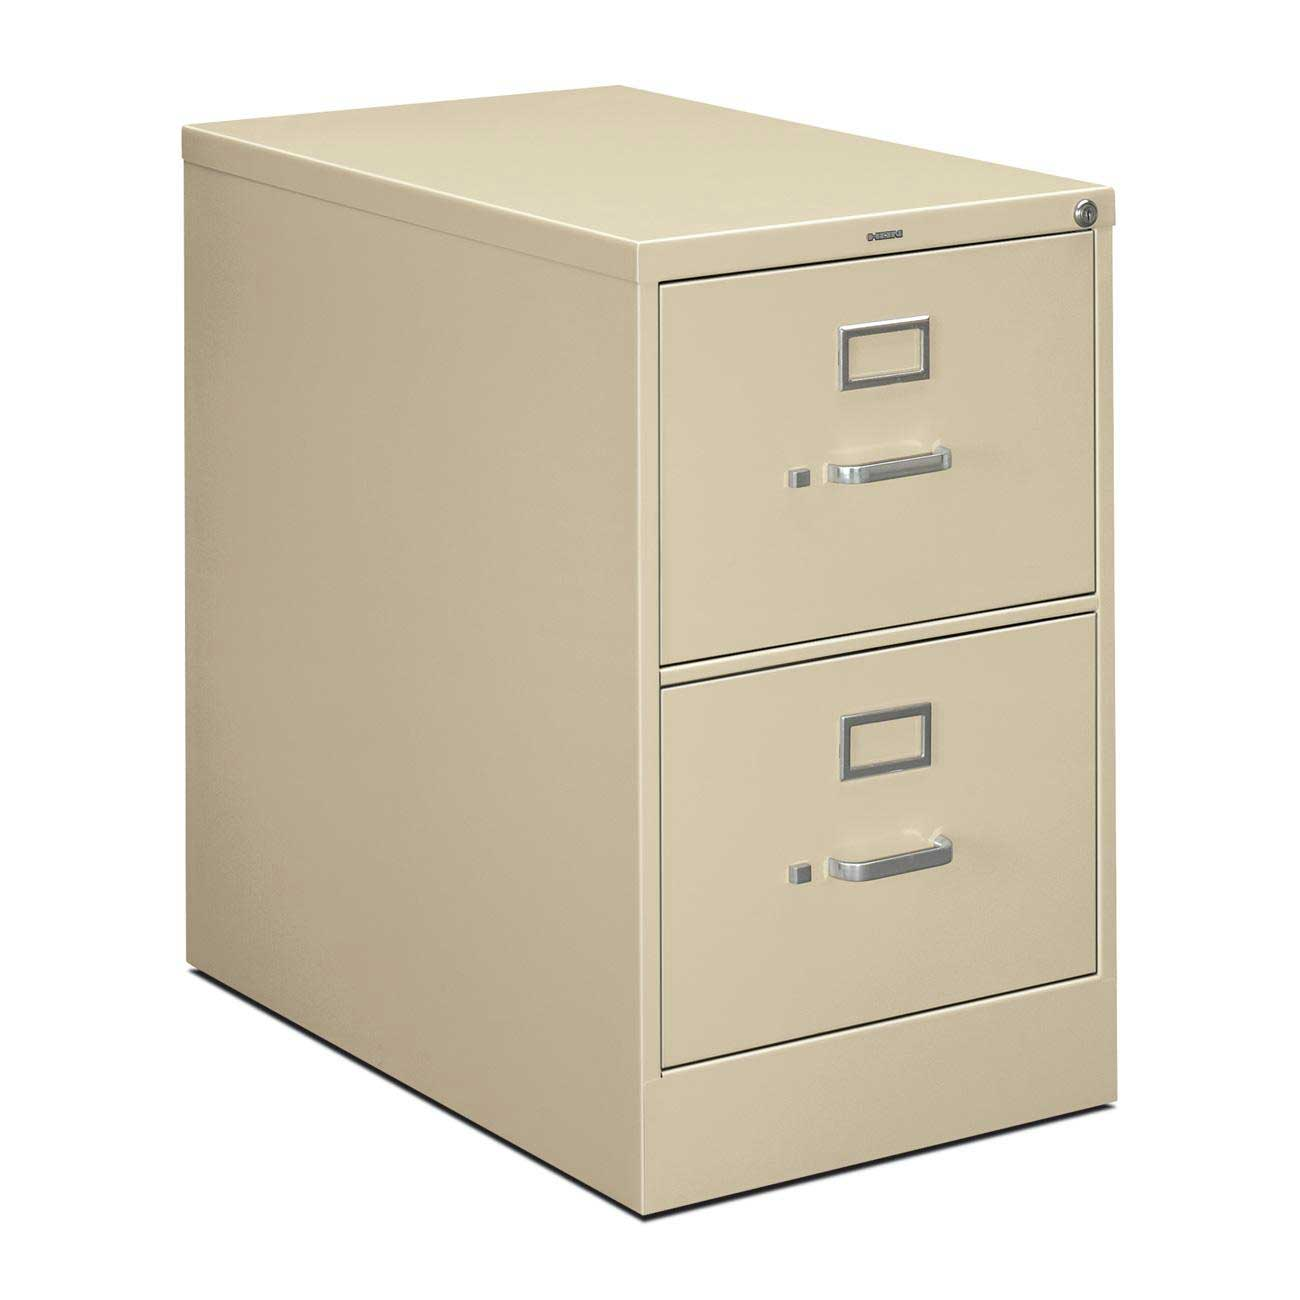 Image of: Drawer Metal filing cabinets